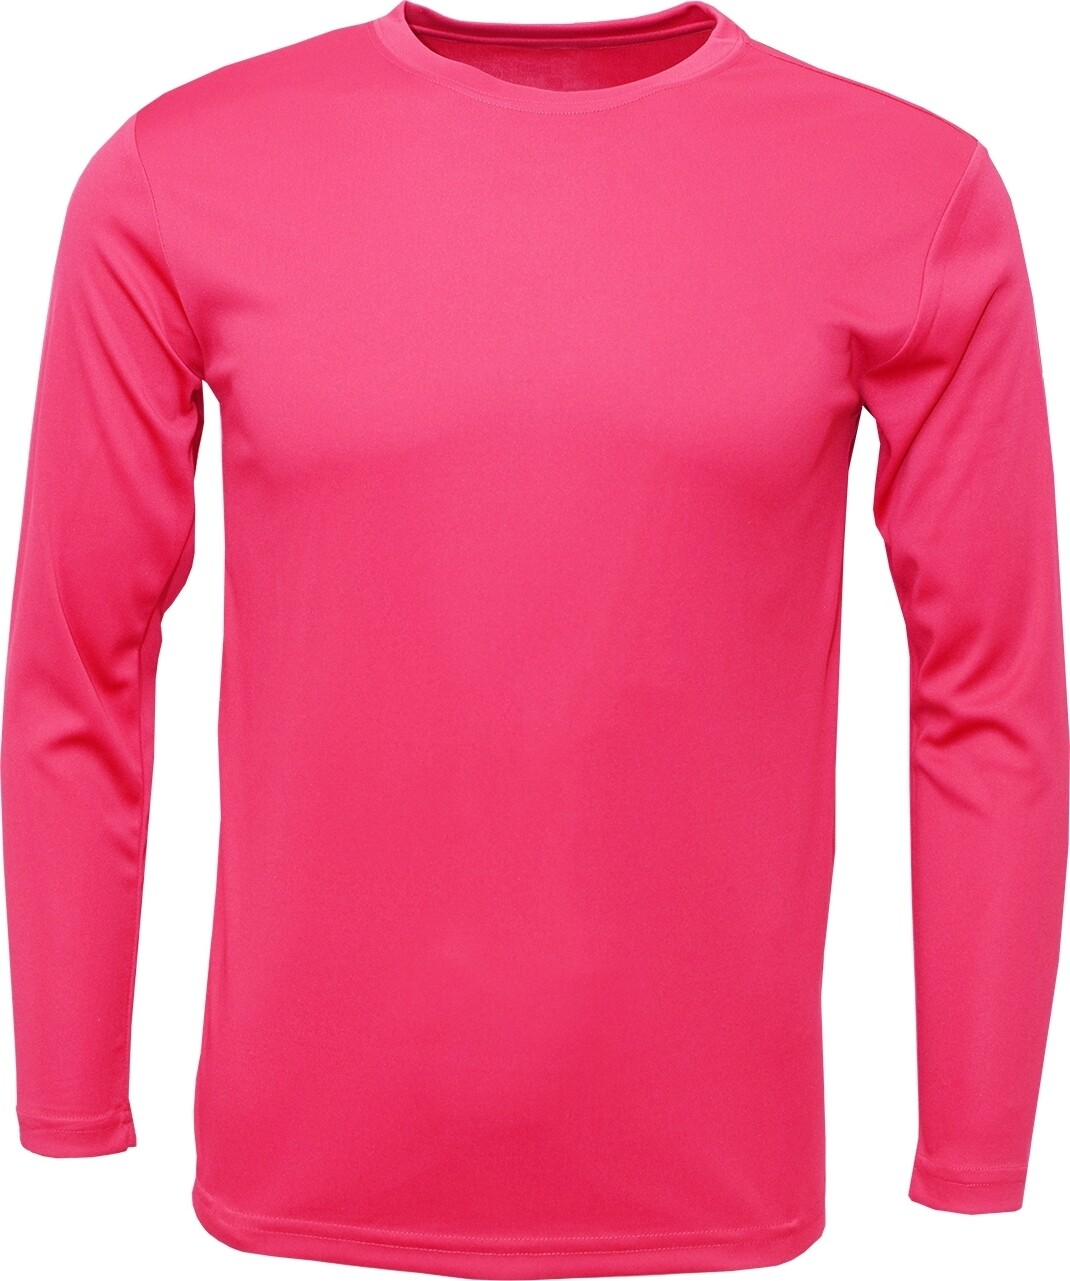 Neon Pink / Front, Back & 1 Sleeve